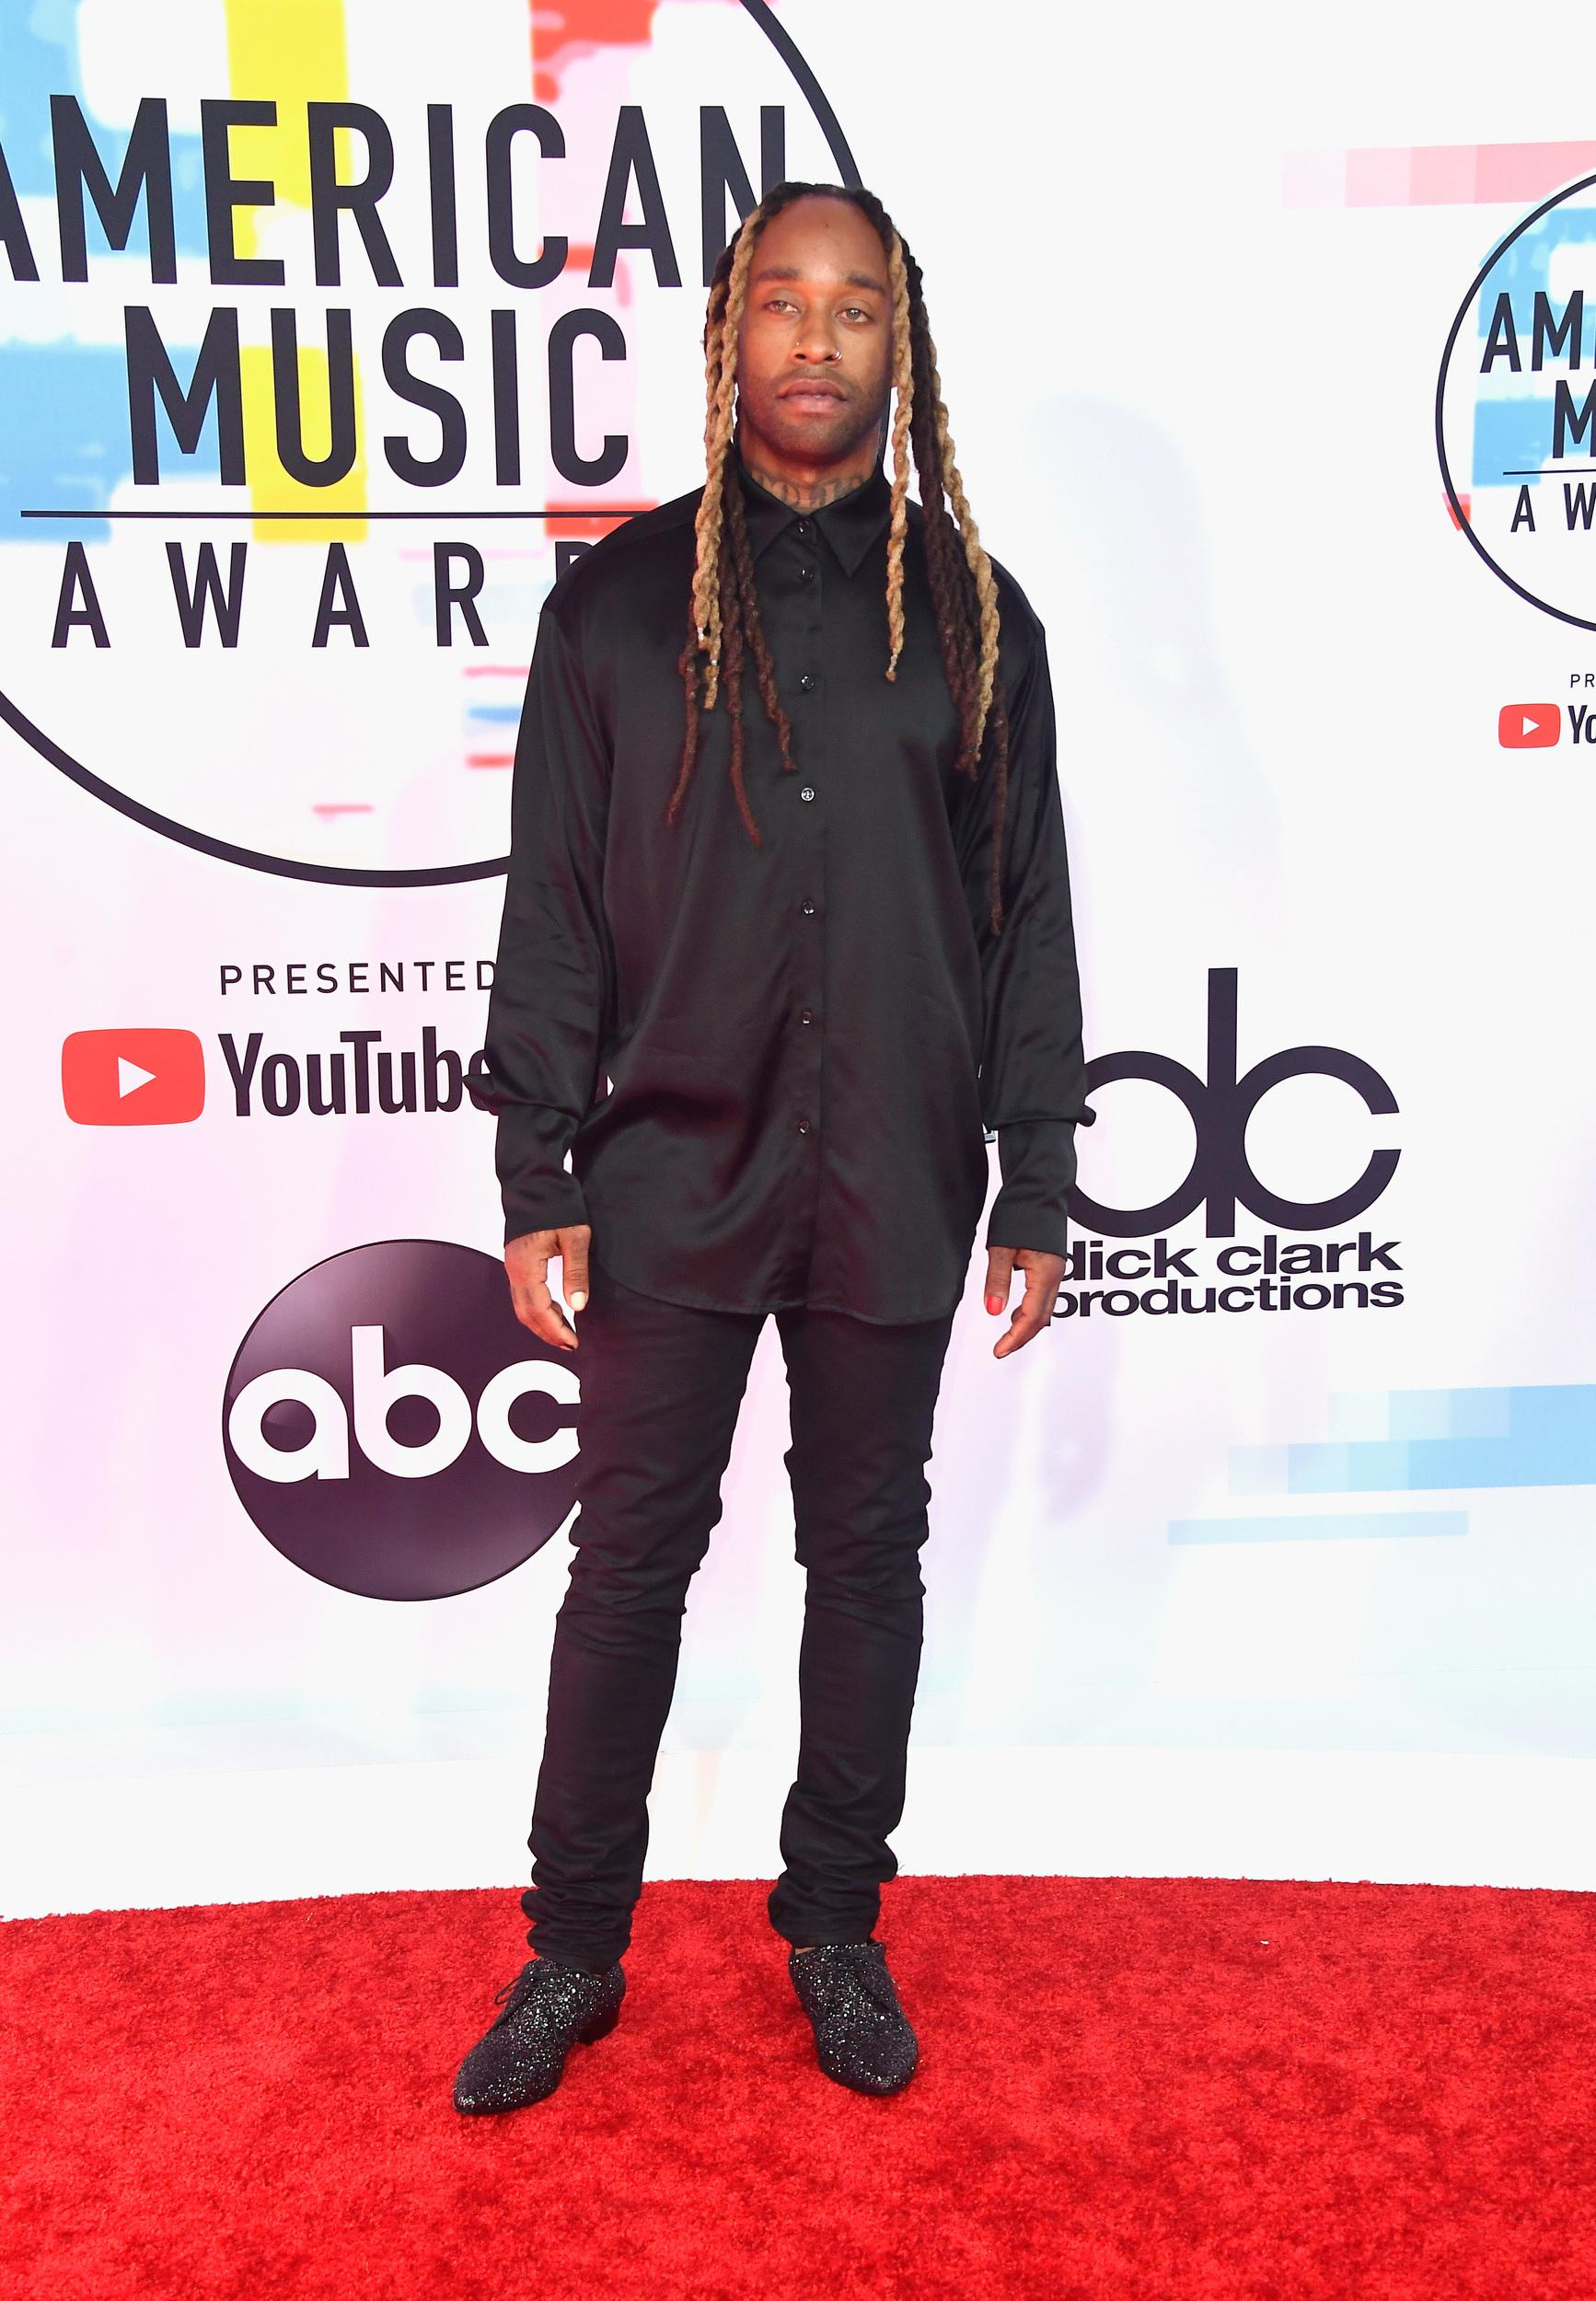 LOS ANGELES, CA - OCTOBER 09:  Ty Dolla Sign attends the 2018 American Music Awards at Microsoft Theater on October 9, 2018 in Los Angeles, California.  (Photo by Frazer Harrison/Getty Images)